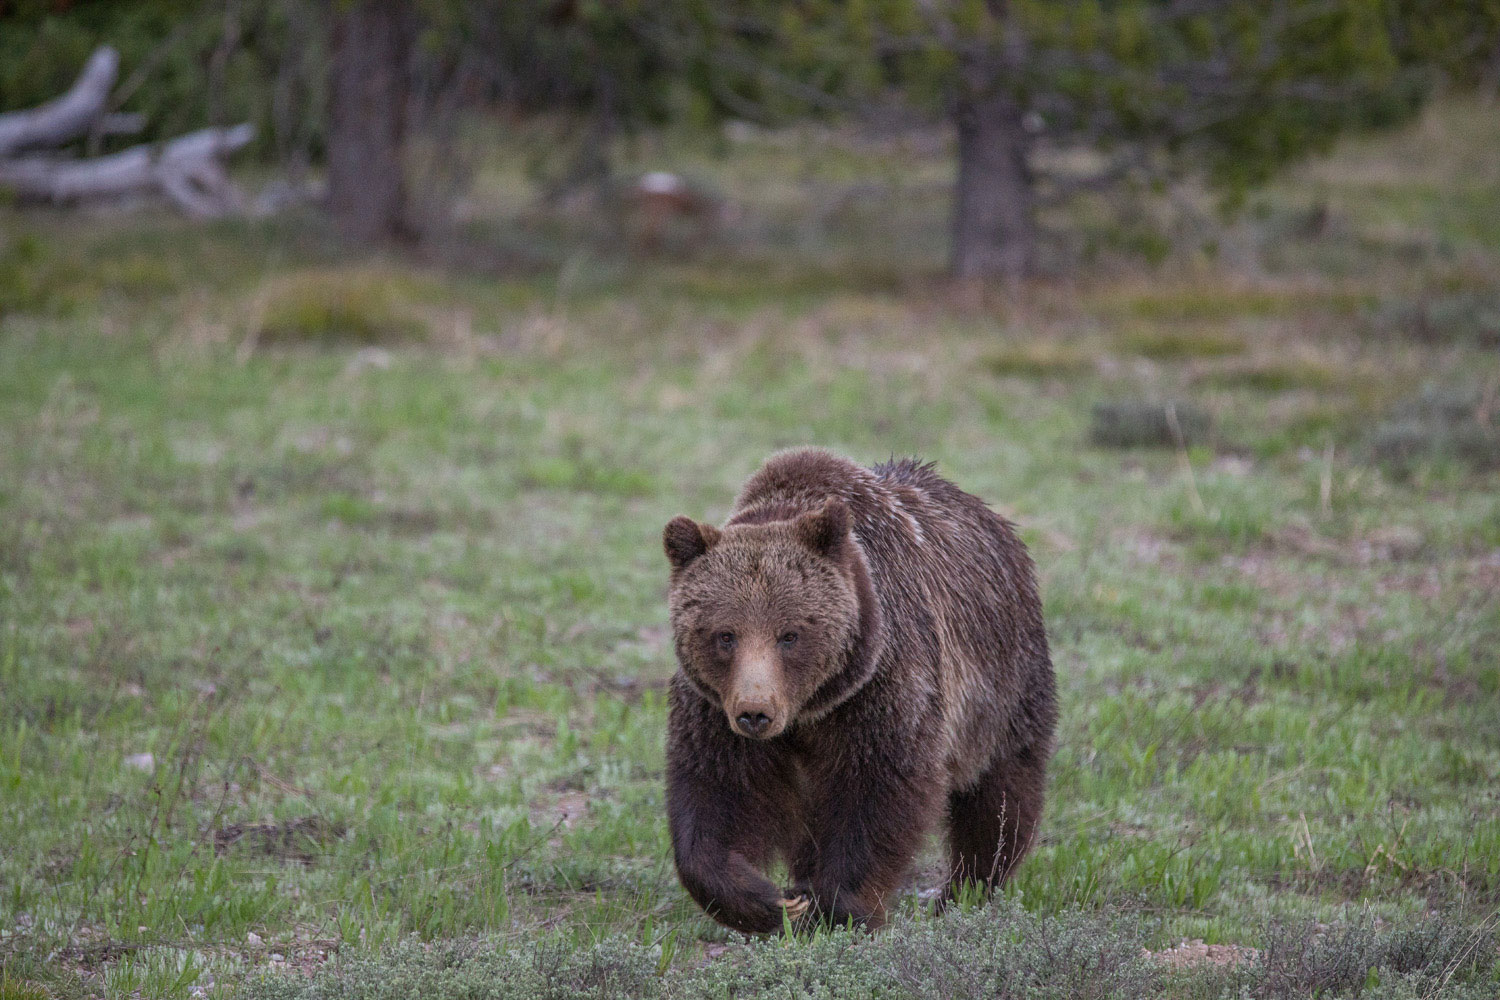 399, grizzly, bear, grand teton, photo, image, 2018, photo